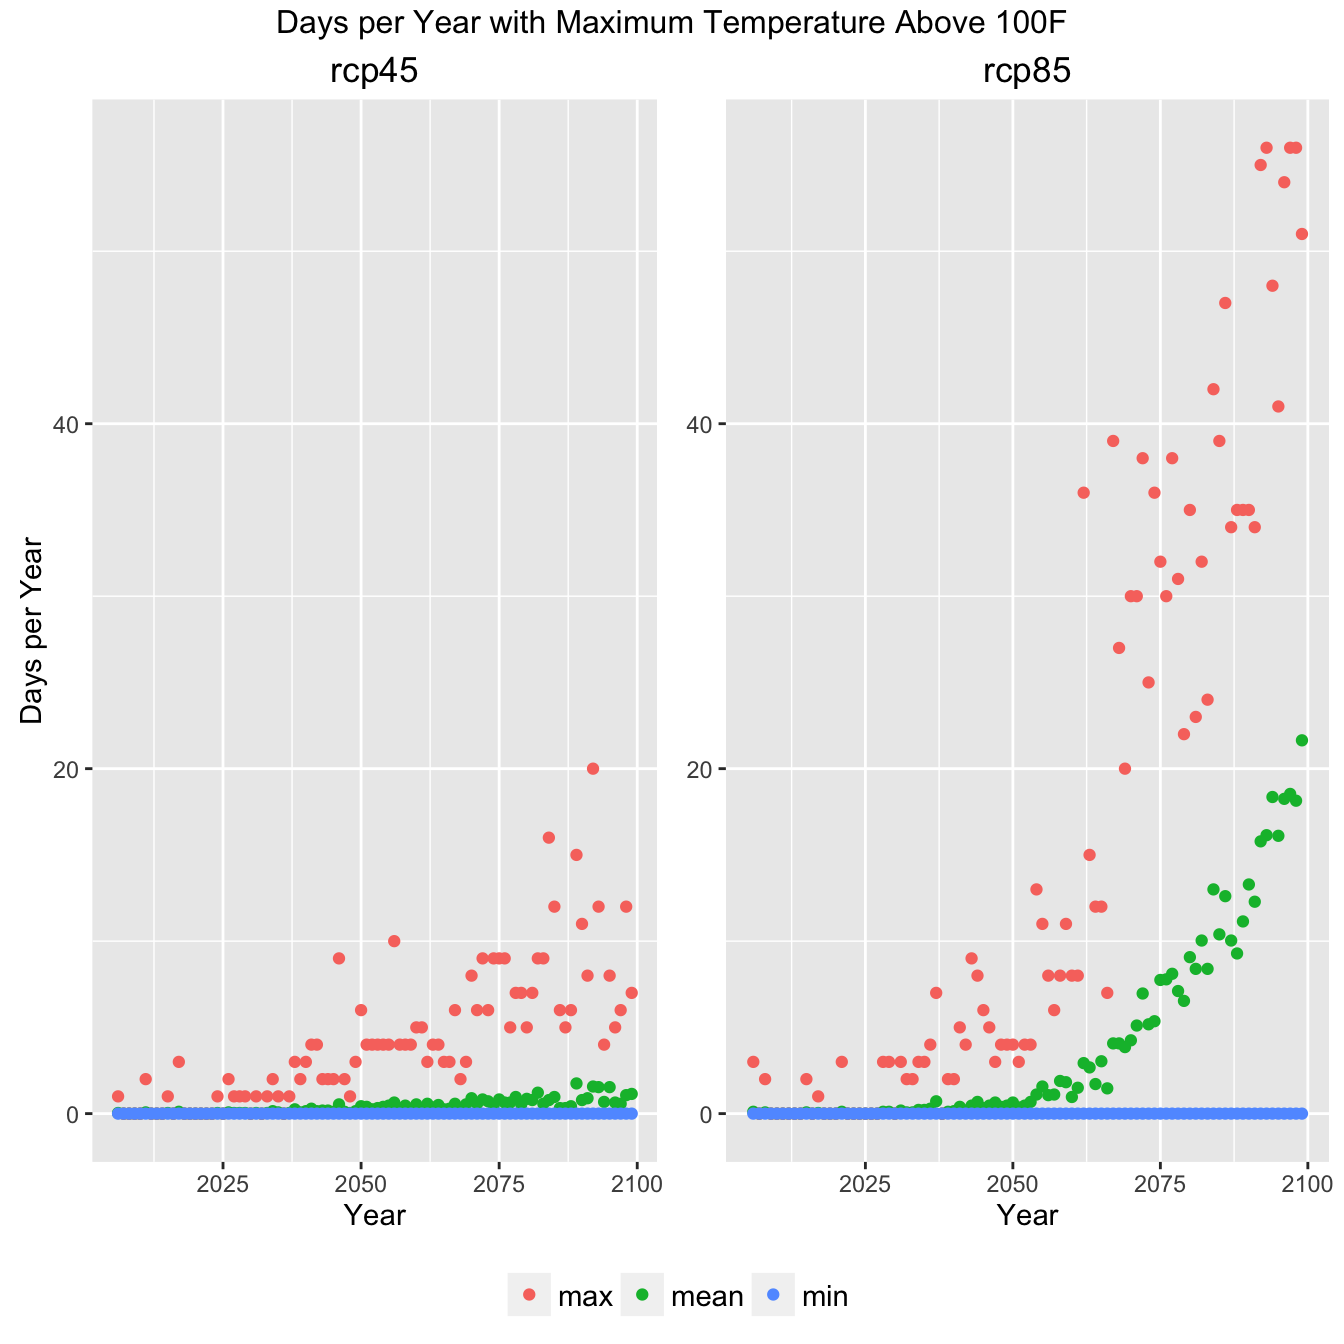 Graph of climate indicator showing min mean and max of GCM ensemble.